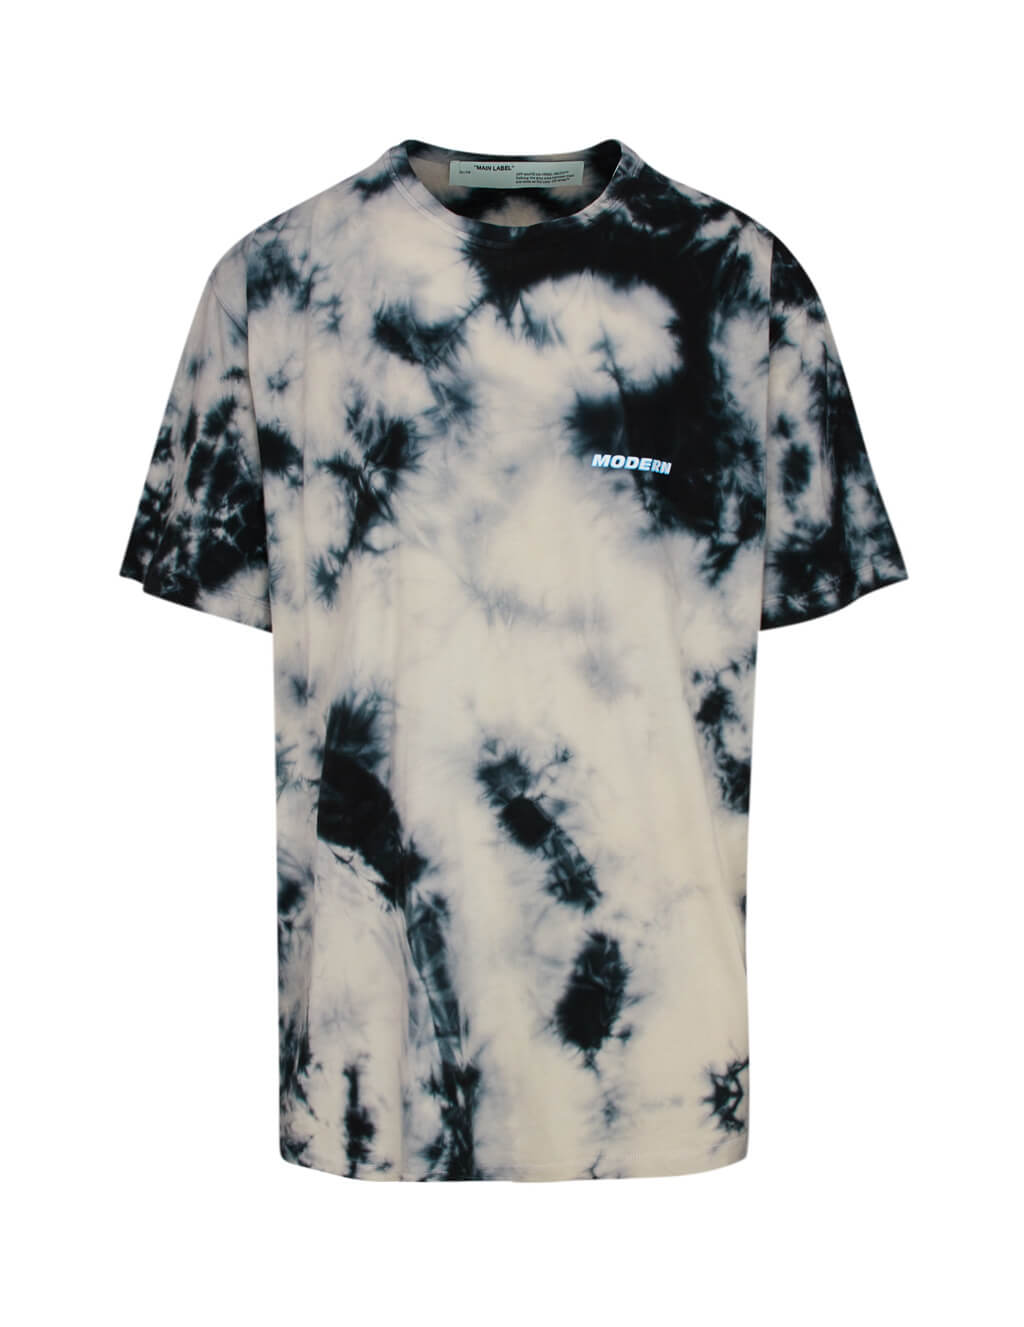 Men's Beige and Black Off-White Tie-Dye T-Shirt OMAA083S201850204800